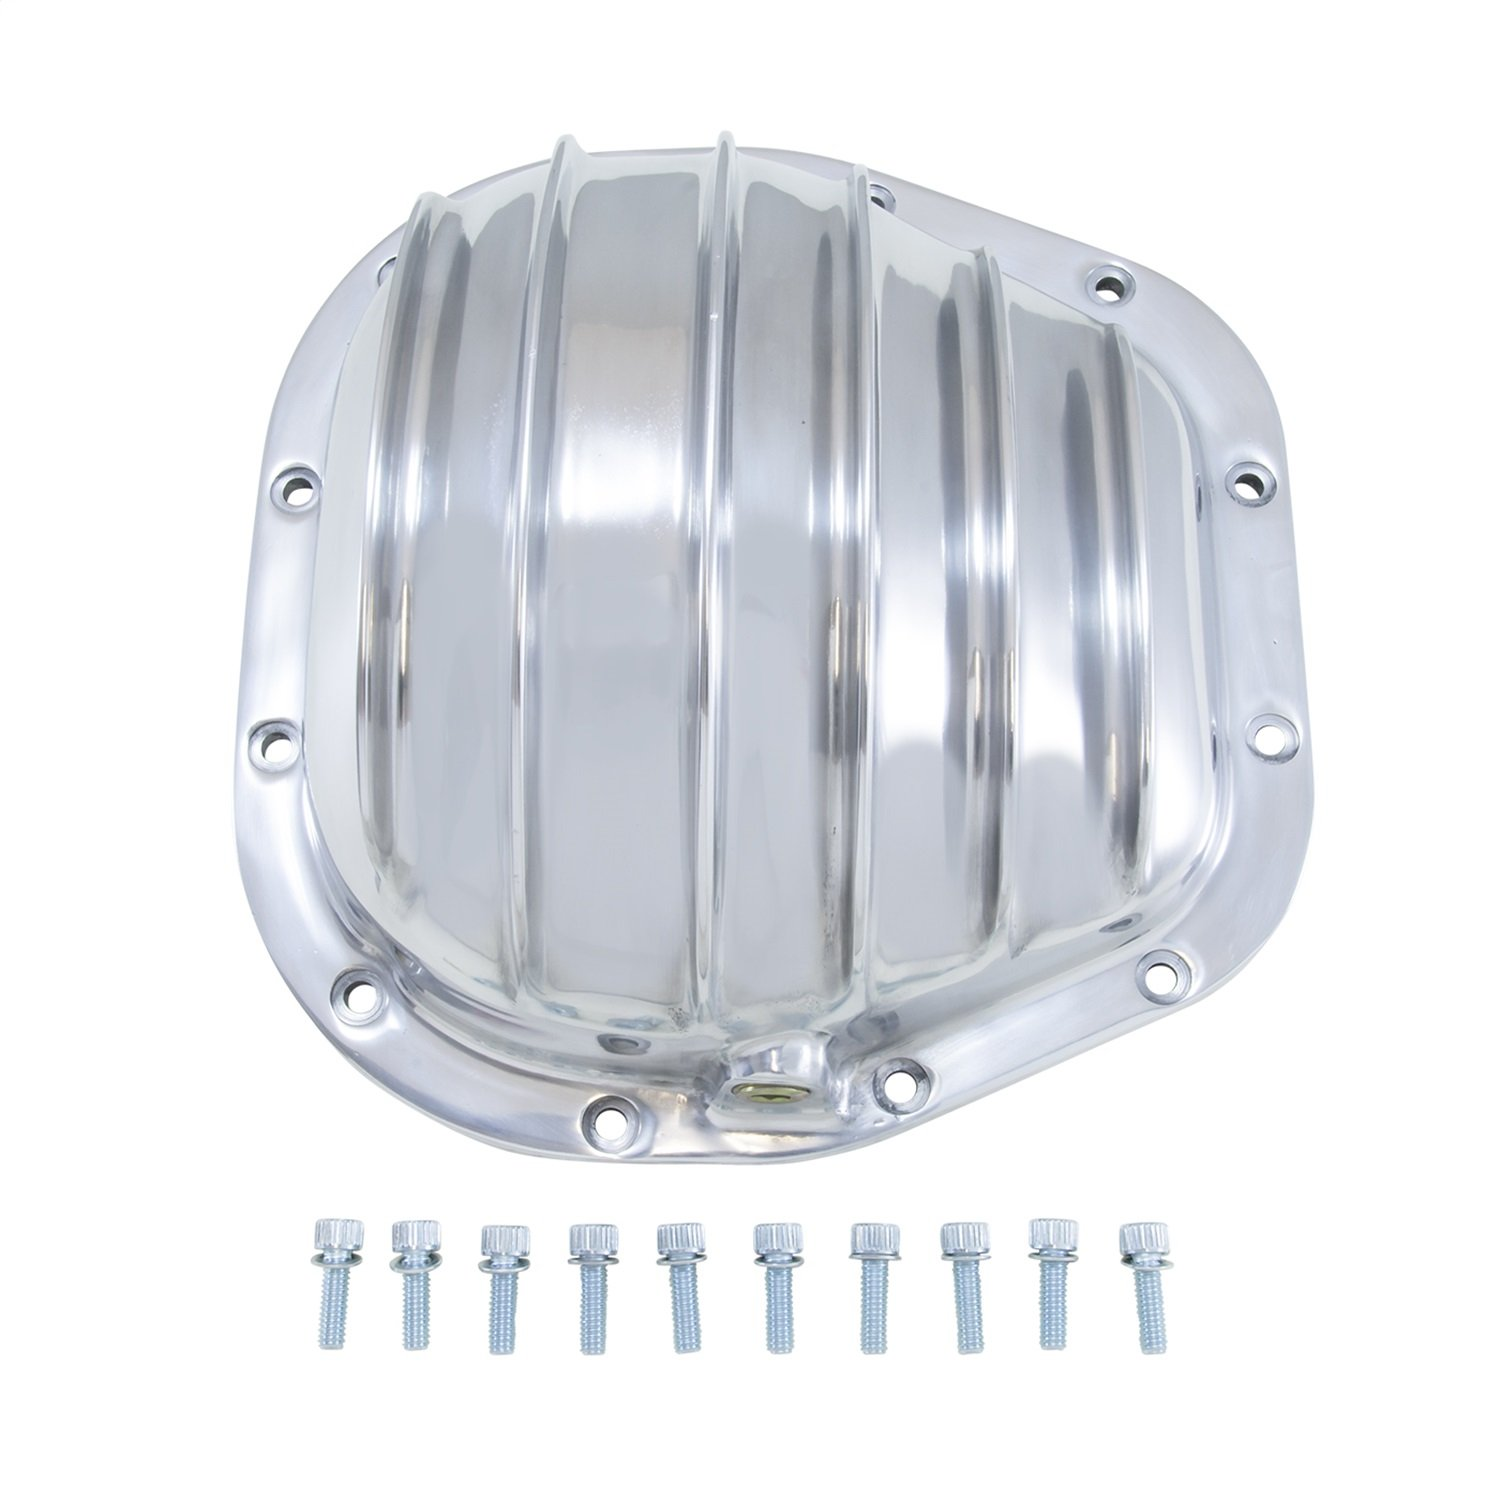 Amazon.com: Yukon Gear & Axle (YP C2-F10.25) Polished Aluminum Cover for Ford 10.25/10.5 Differential: Automotive